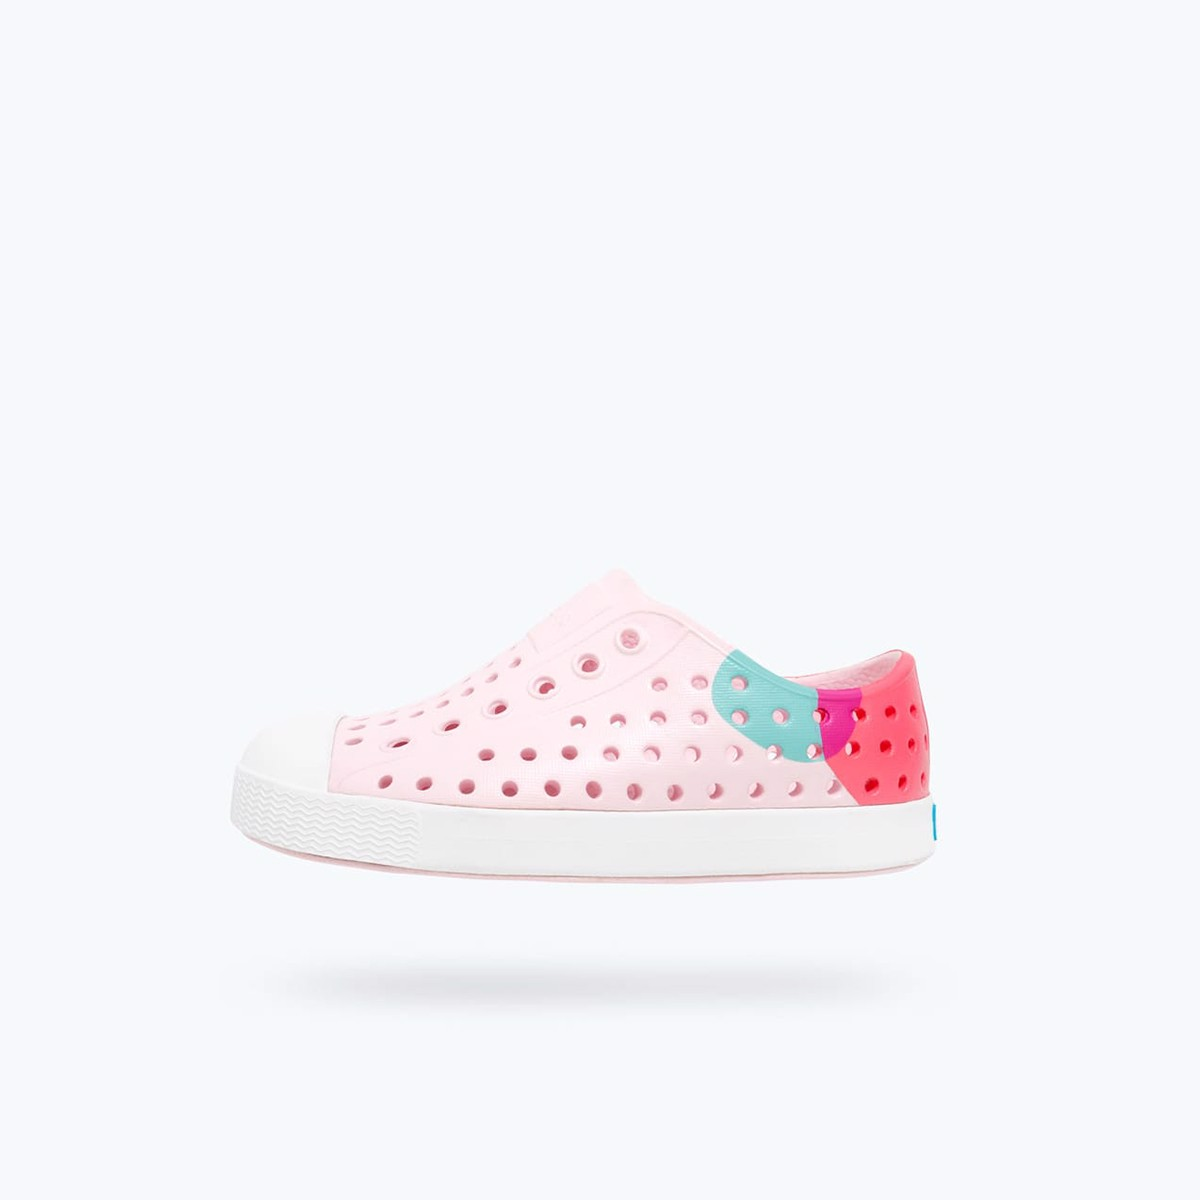 GIÀY NAT J JEFFERSON BLOCK JUNIOR (12100102) MILK PINK/ SHELL WHITE/ DOT BLOCK